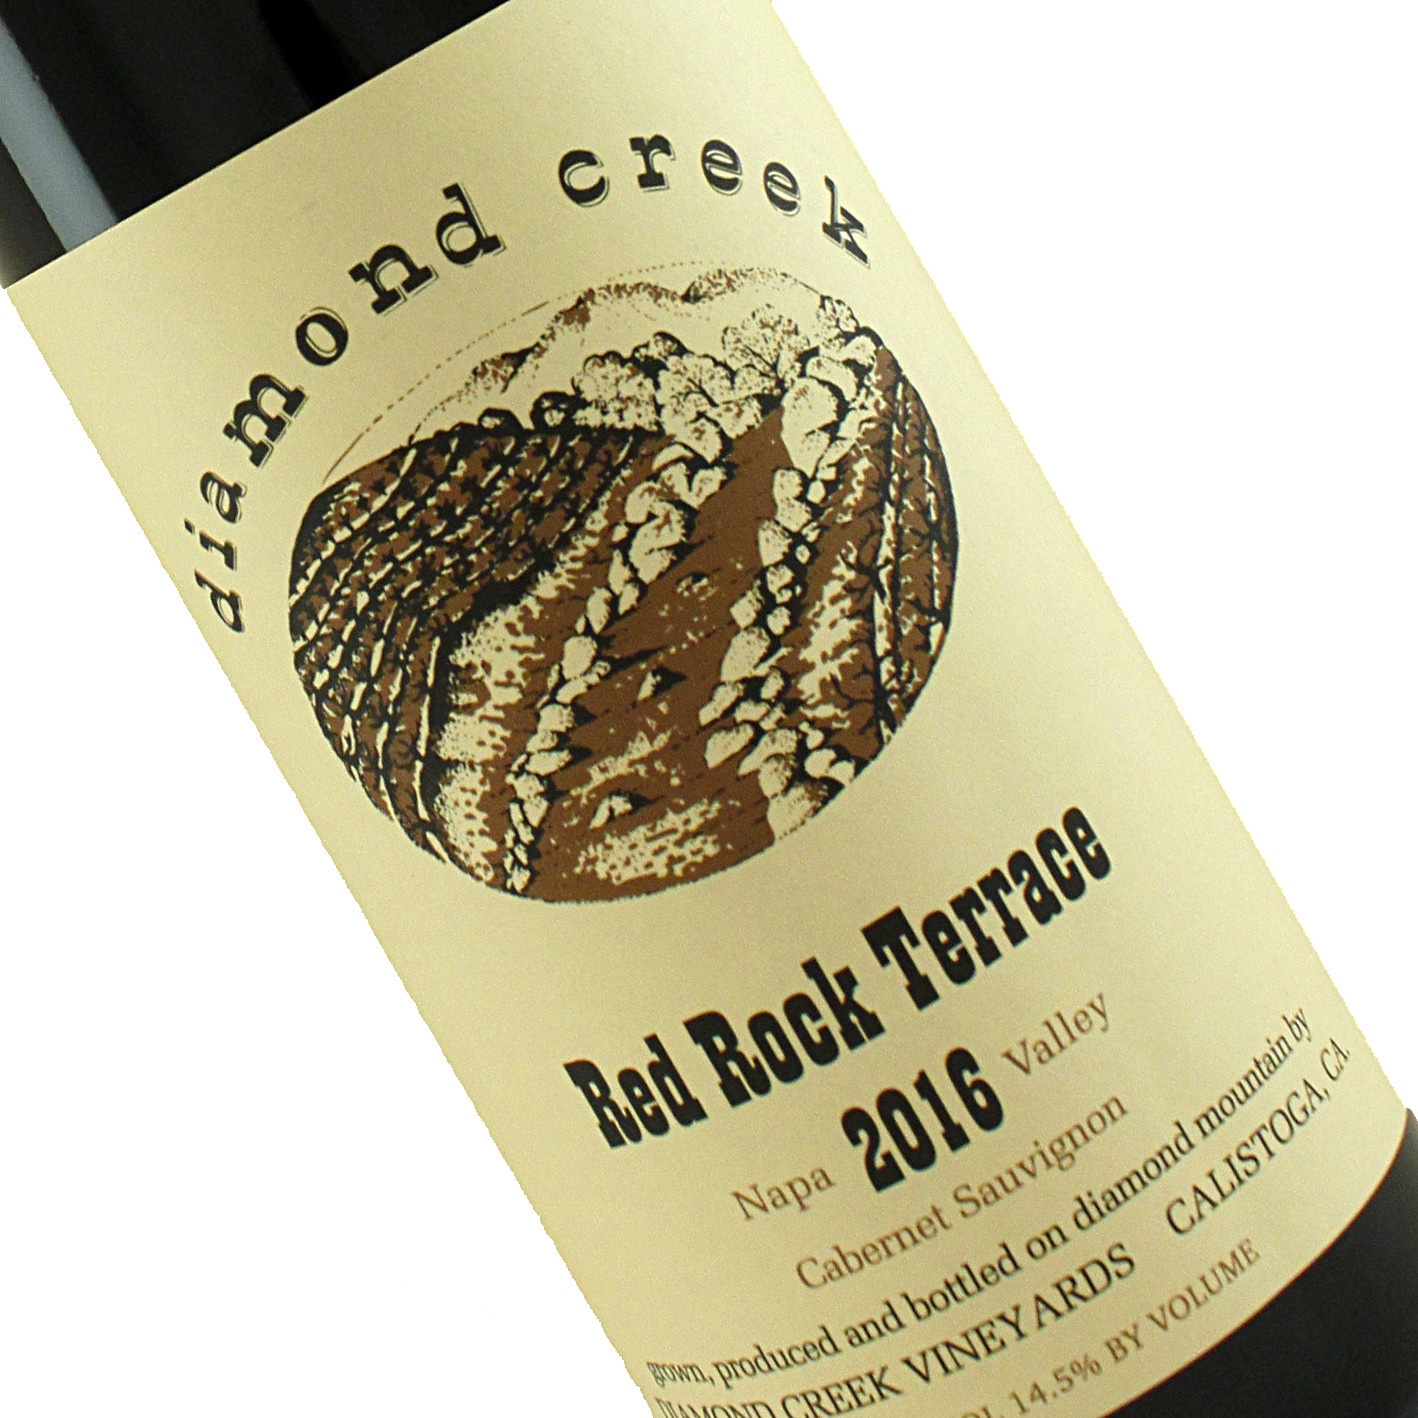 Diamond Creek 2016 Cabernet Sauvignon Red Rock Terrace, Napa Valley